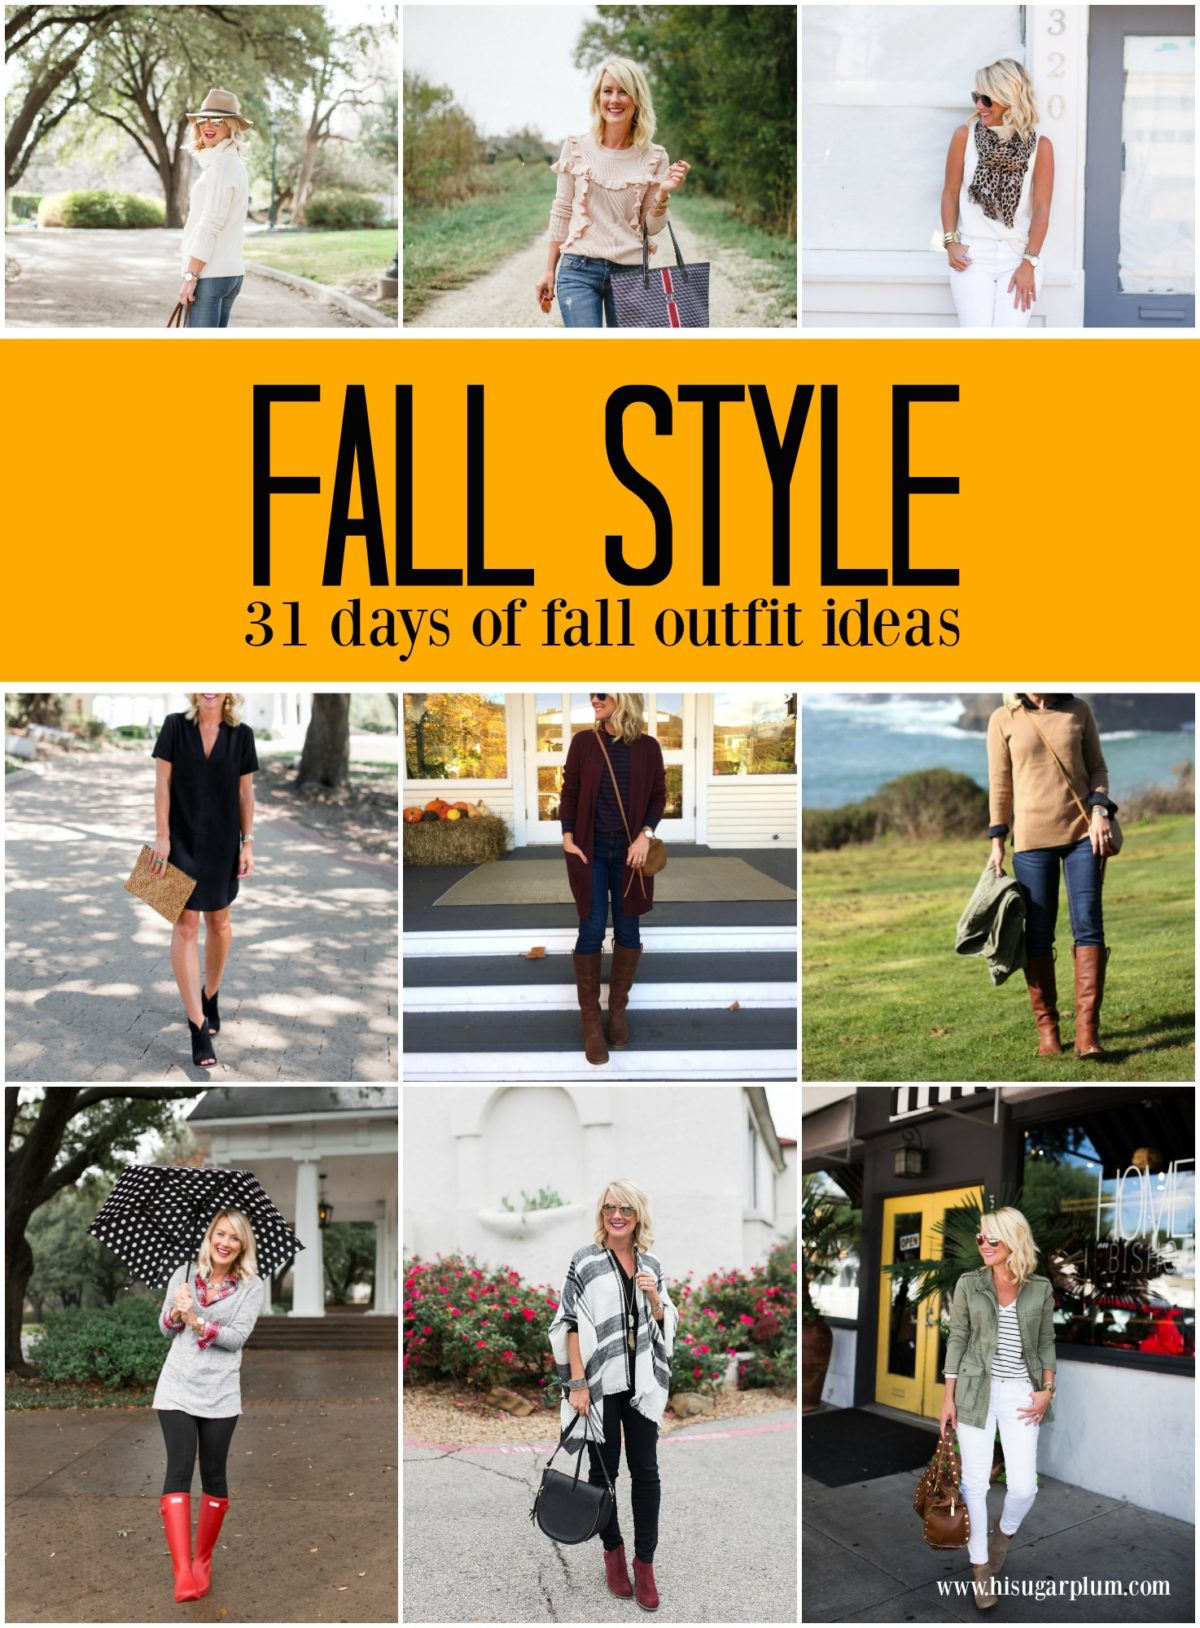 31 Fall Outfit Ideas